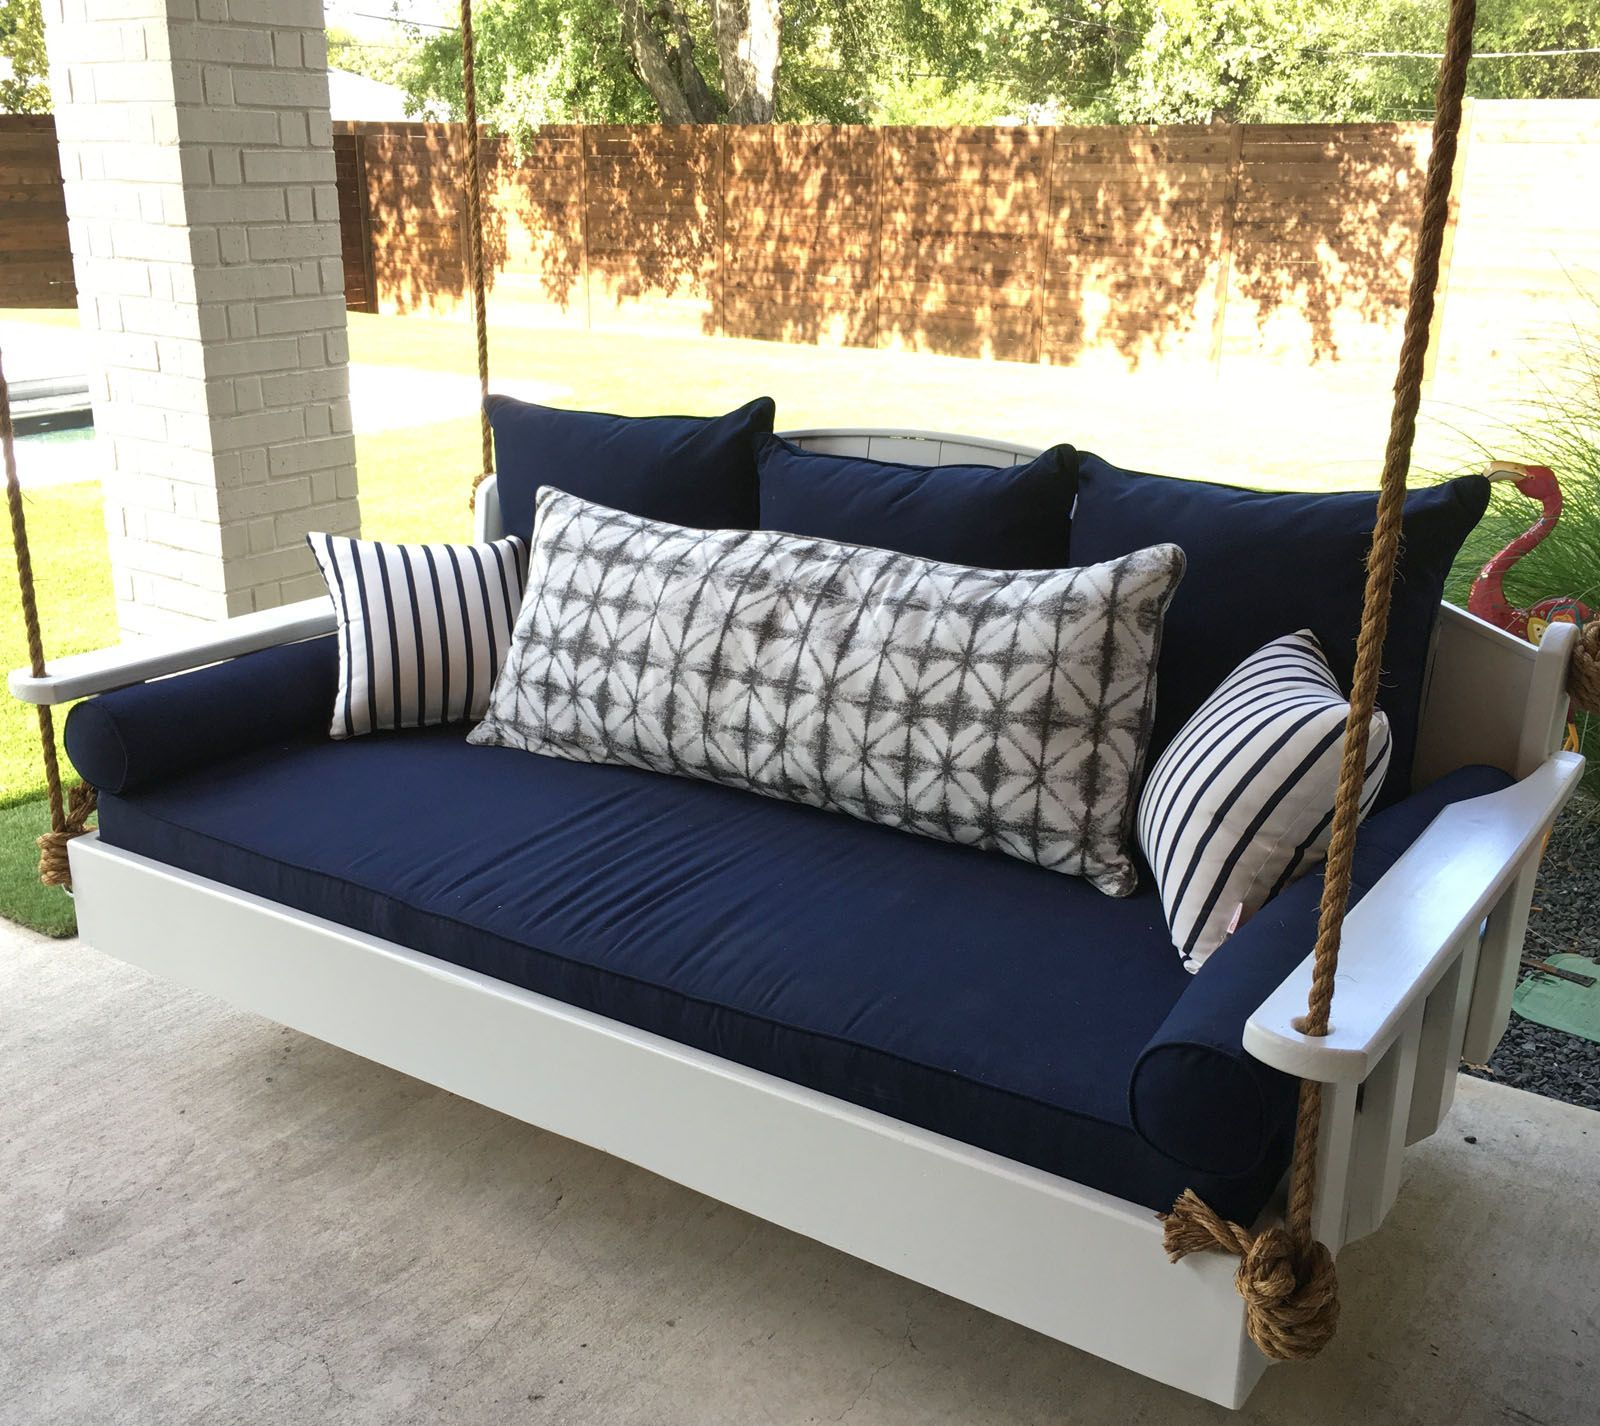 Sunbrella Cushion And Pillows Make Daybed Swing A Cozy Resting Spot Porch Swing Cushions Outdoor Daybed Cushion Outdoor Daybed